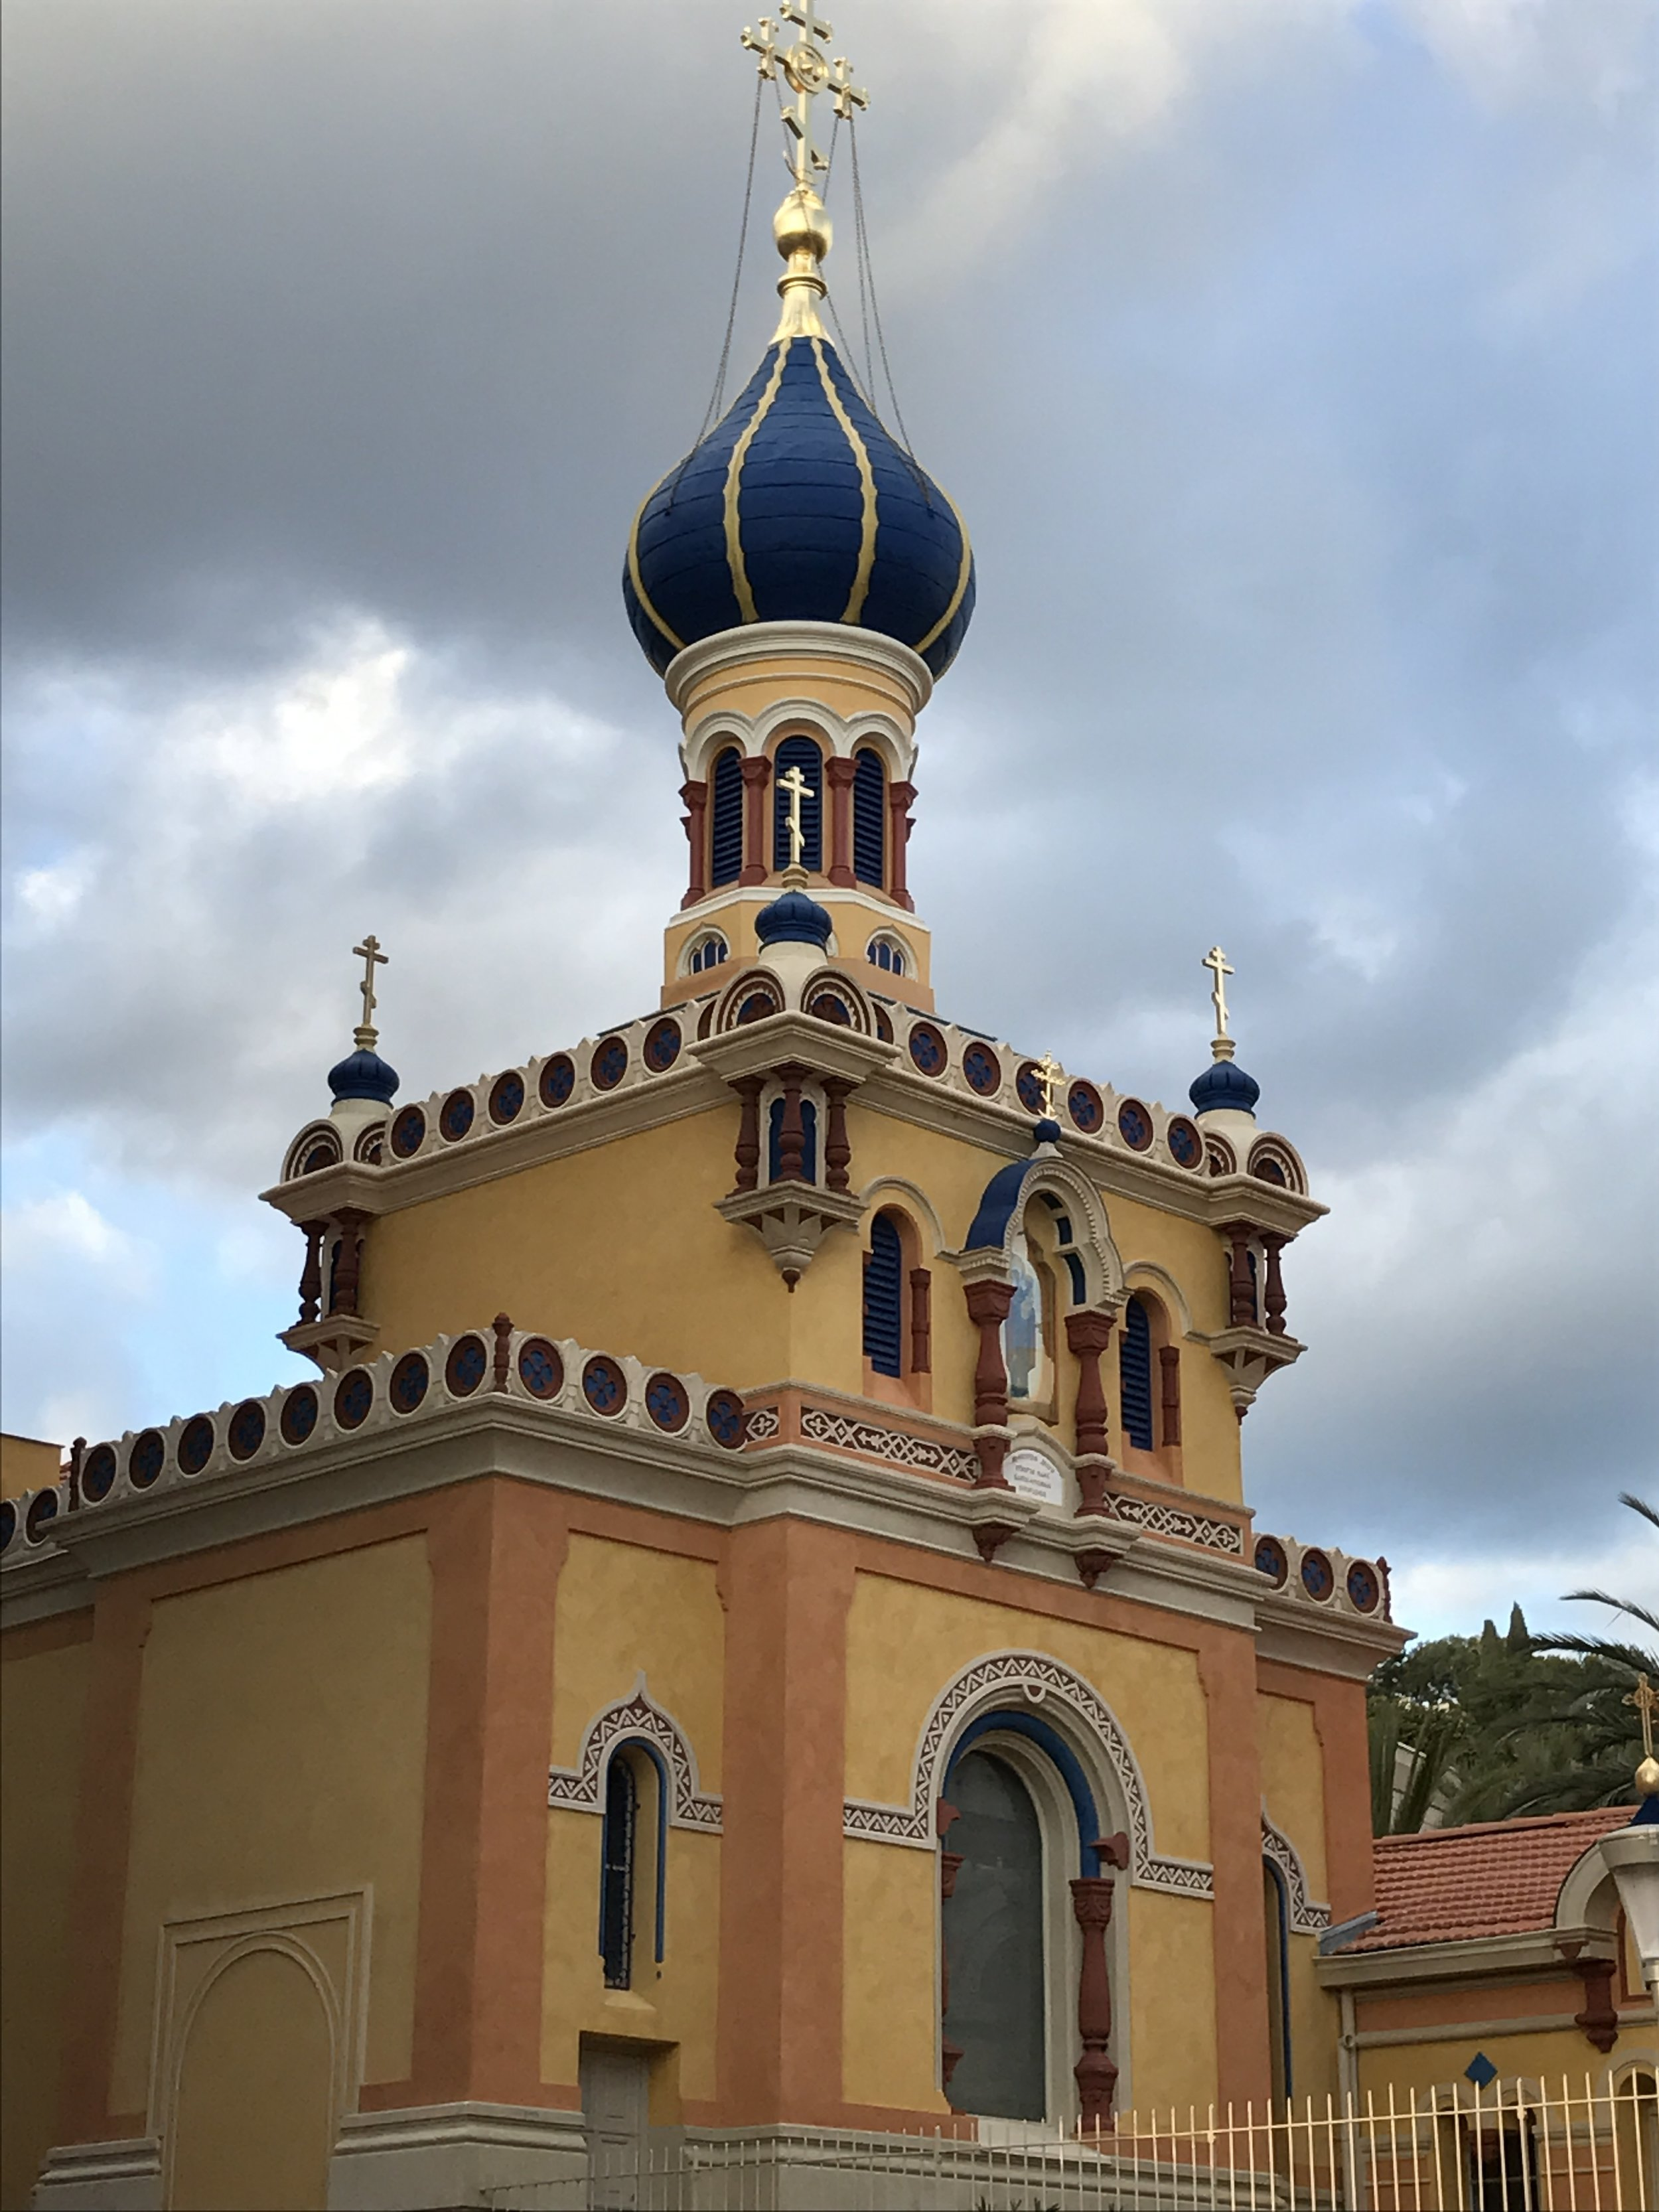 The superb Russian Church in Menton has re-opened after its renovation.  What a wonderful sight!